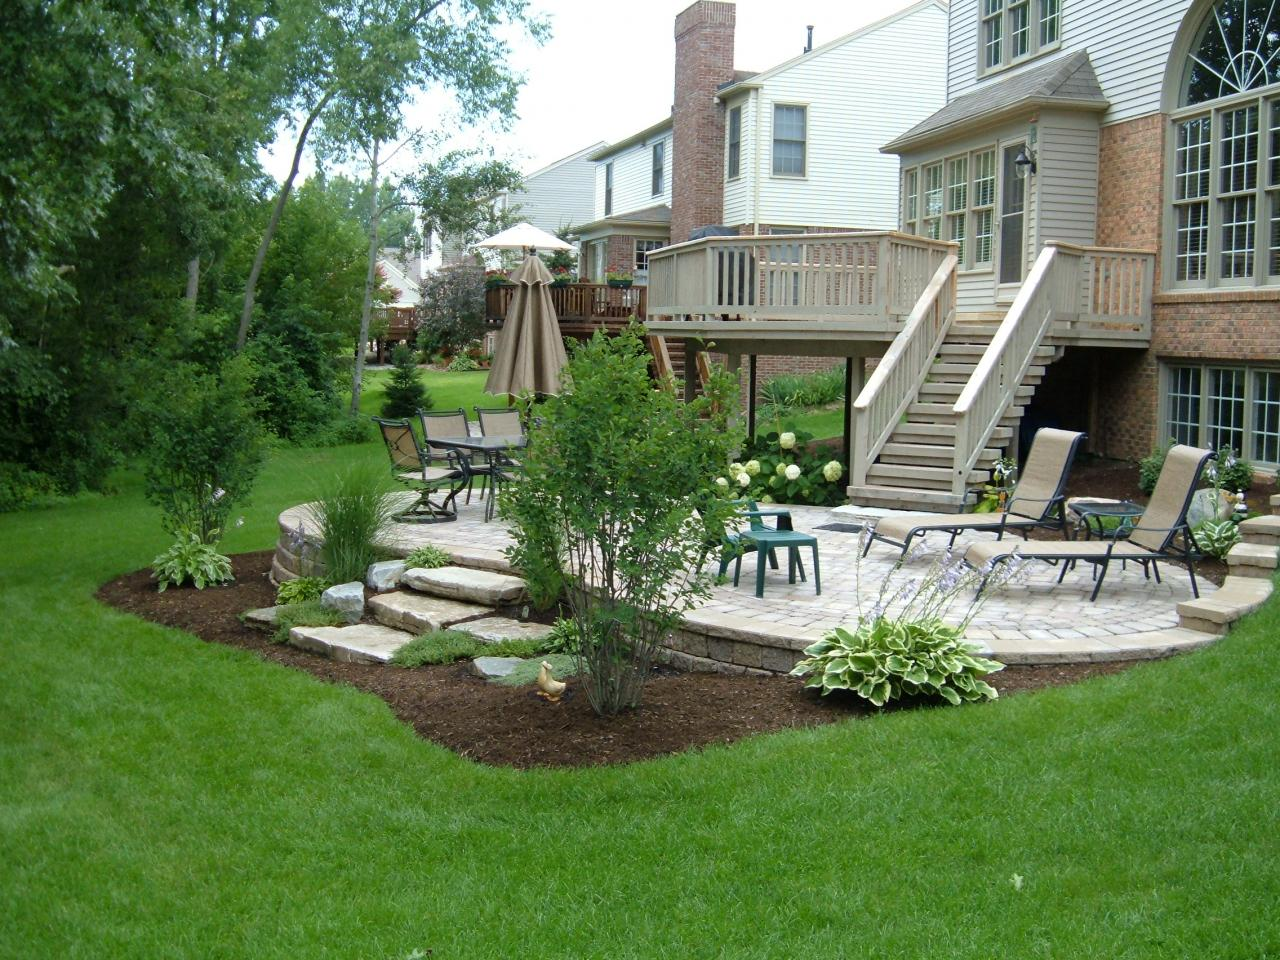 brett landscaping inc photo gallery